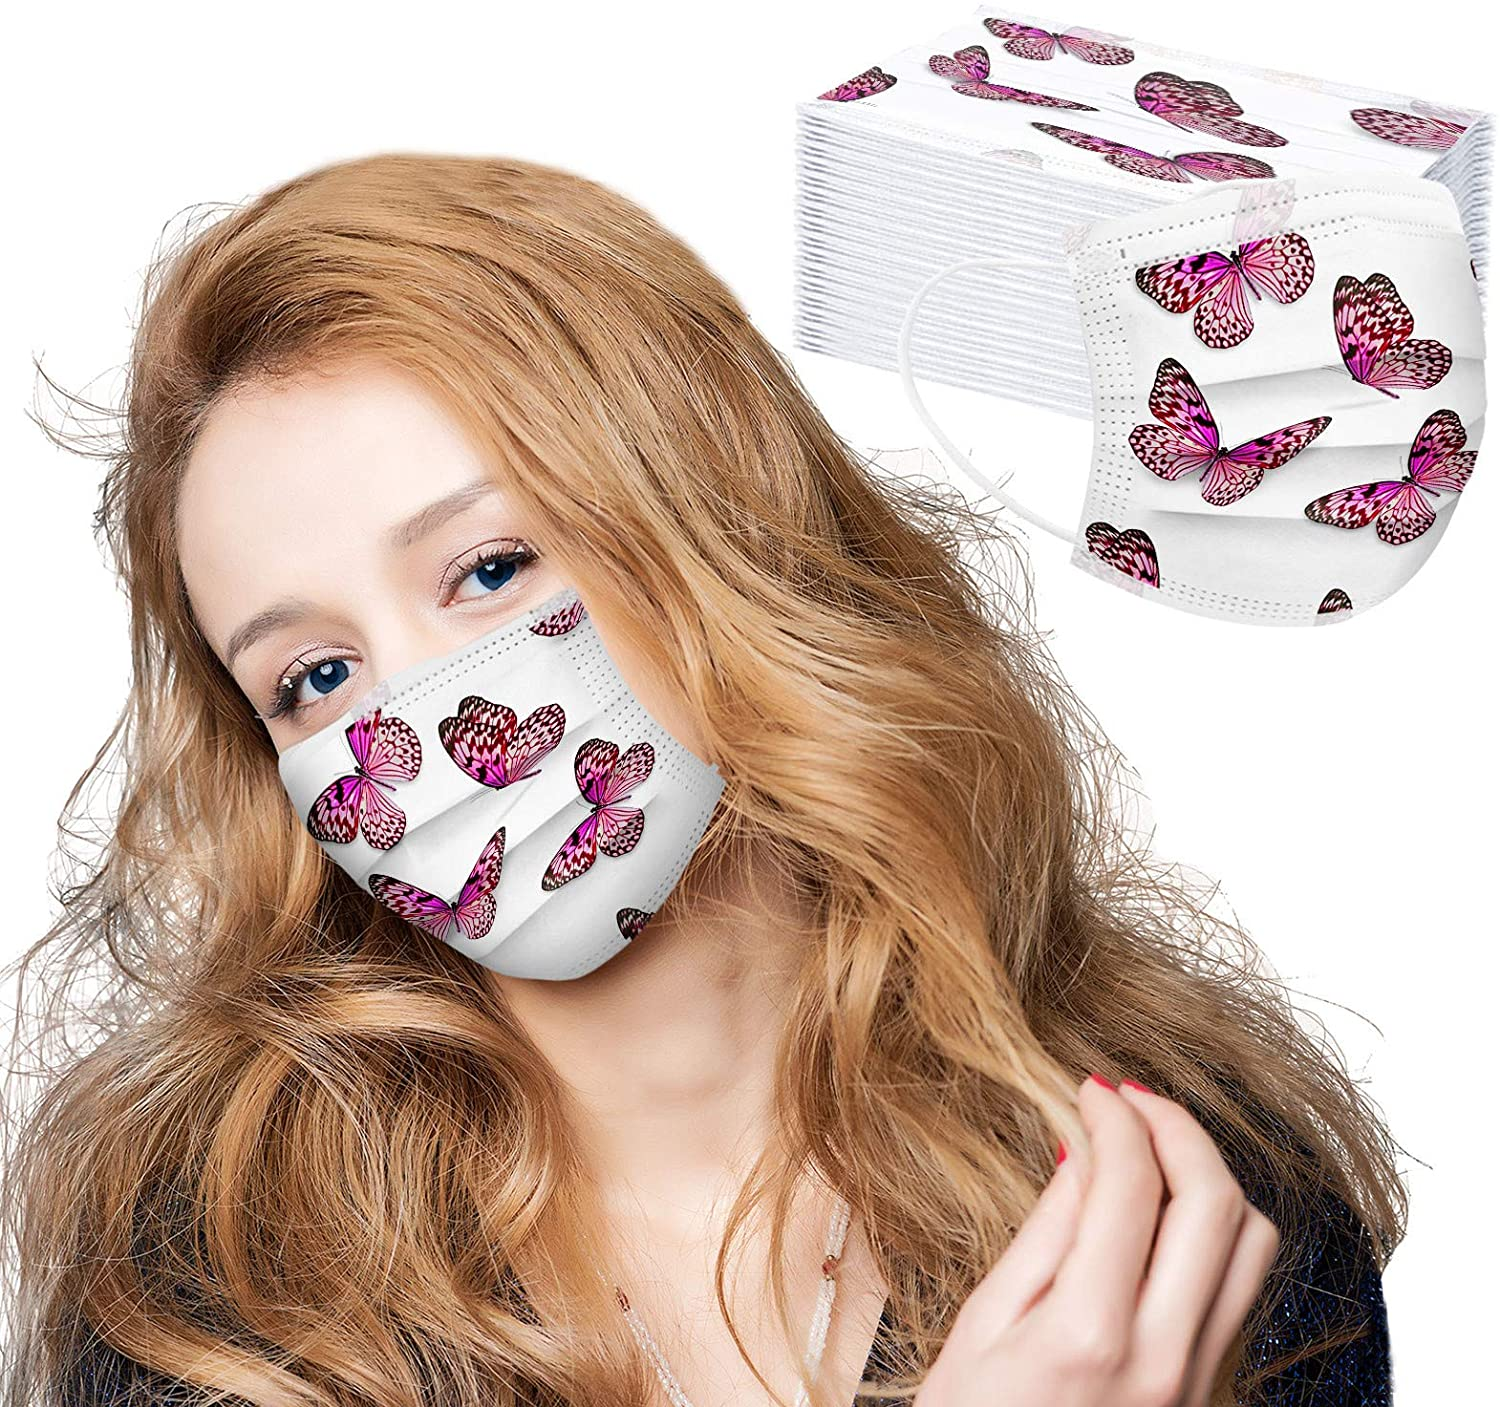 NMSLCNM 50Pcs Adult Disposable Face_Mask, Fashion Butterfly Printed 3Ply Breathable Face_Masks with Nose Bridge Strip for Women Anti-Dust Protection